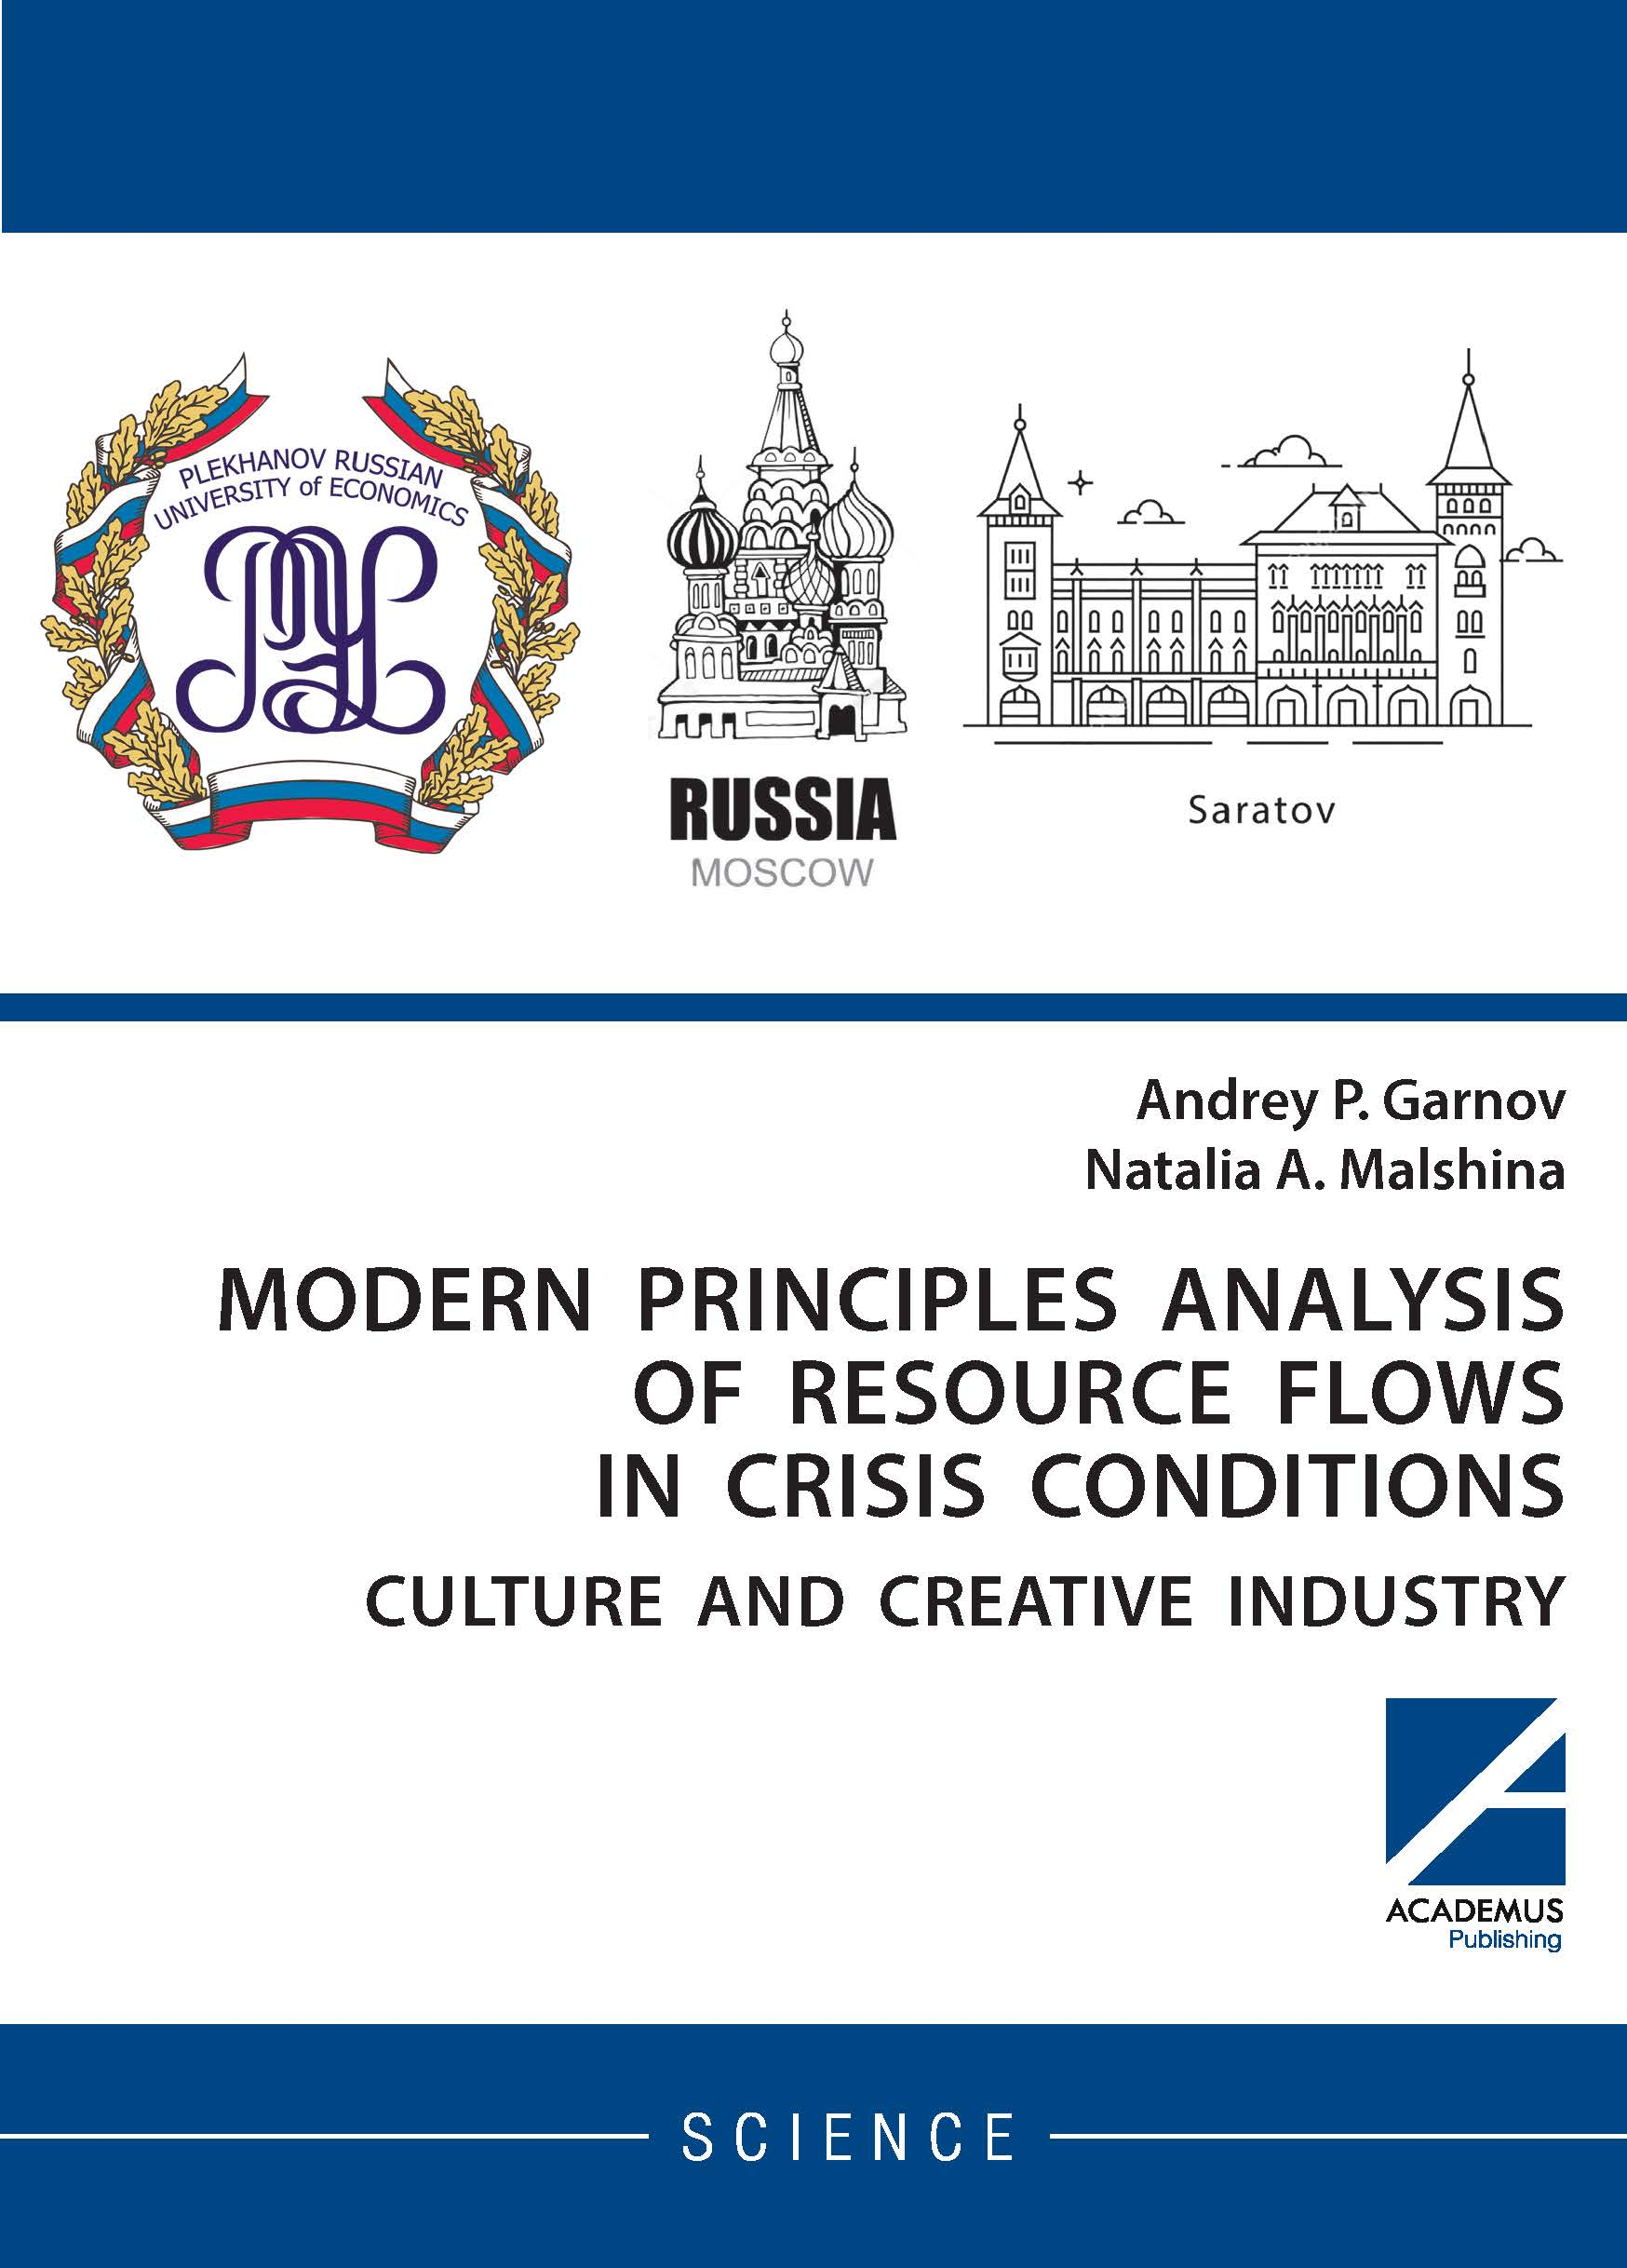 MODERN PRINCIPLES ANALYSIS OF RESOURCE FLOWS IN CRISIS CONDITIONS: CULTURE AND CREATIVE INDUSTRY